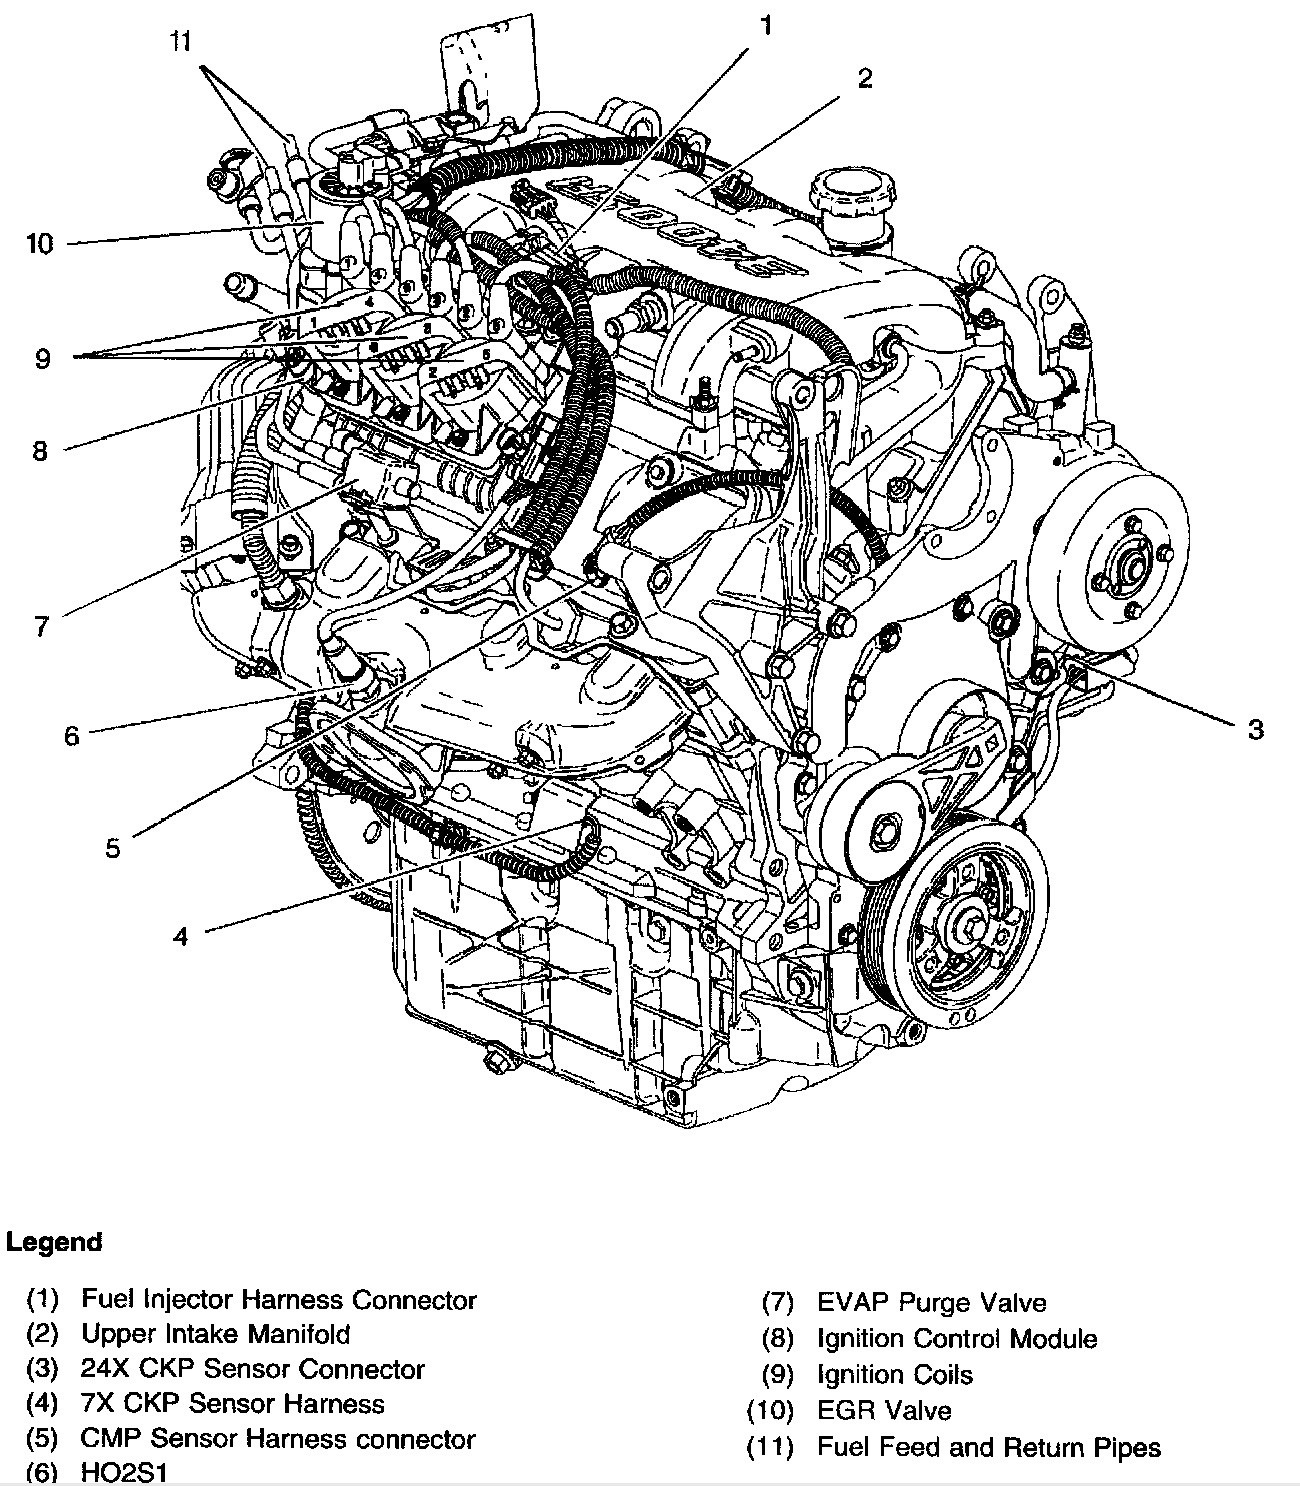 chevrolet v6 engine diagram schema diagram preview Chevy 3.1 V6 Diagram